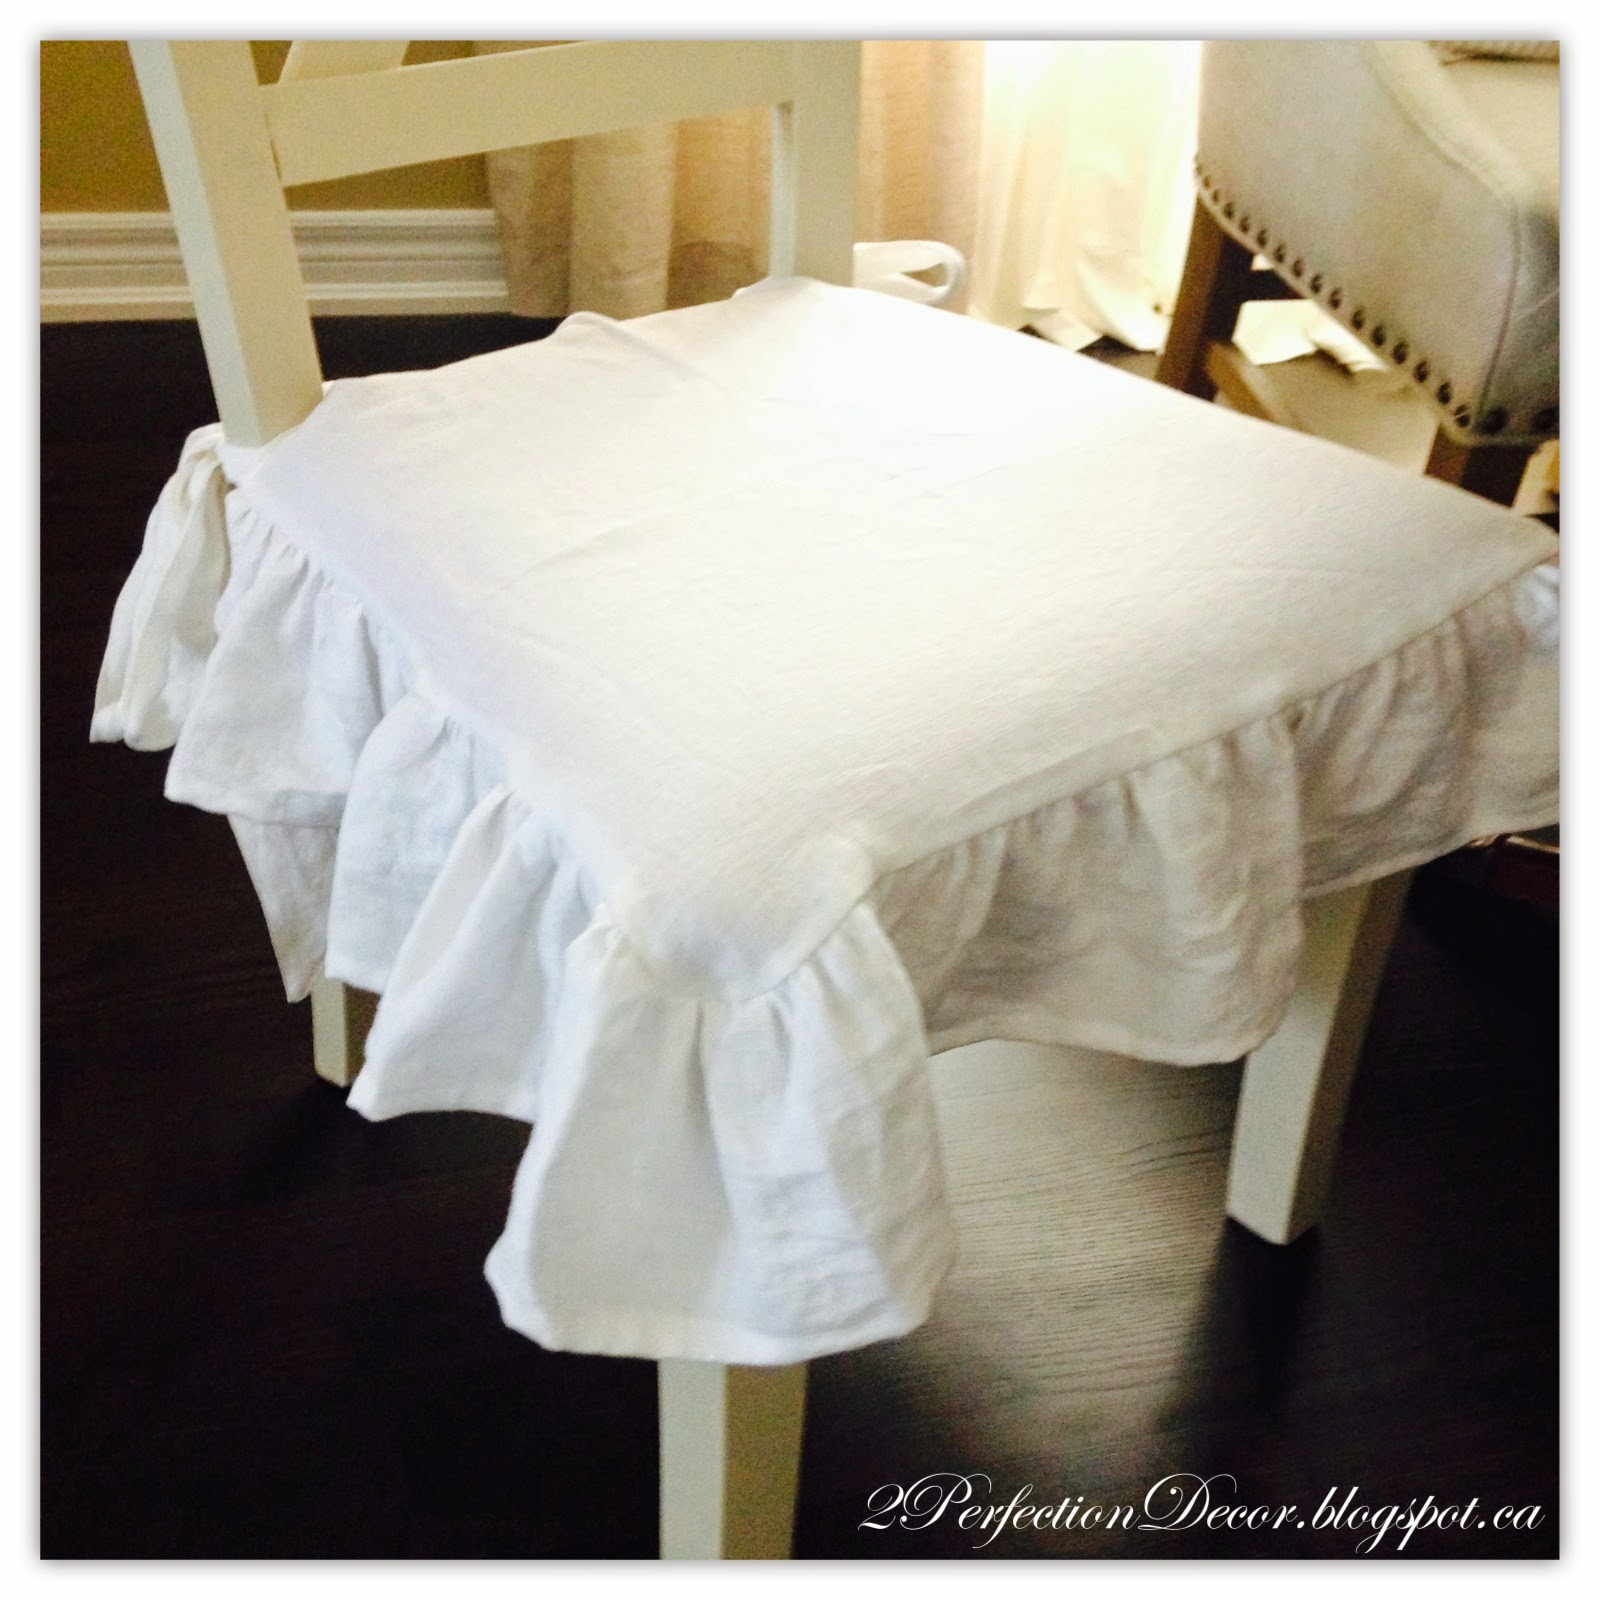 Linen Dining Chair Covers Office You Can Sleep In 2perfection Decor X Back Chairs Makeover With